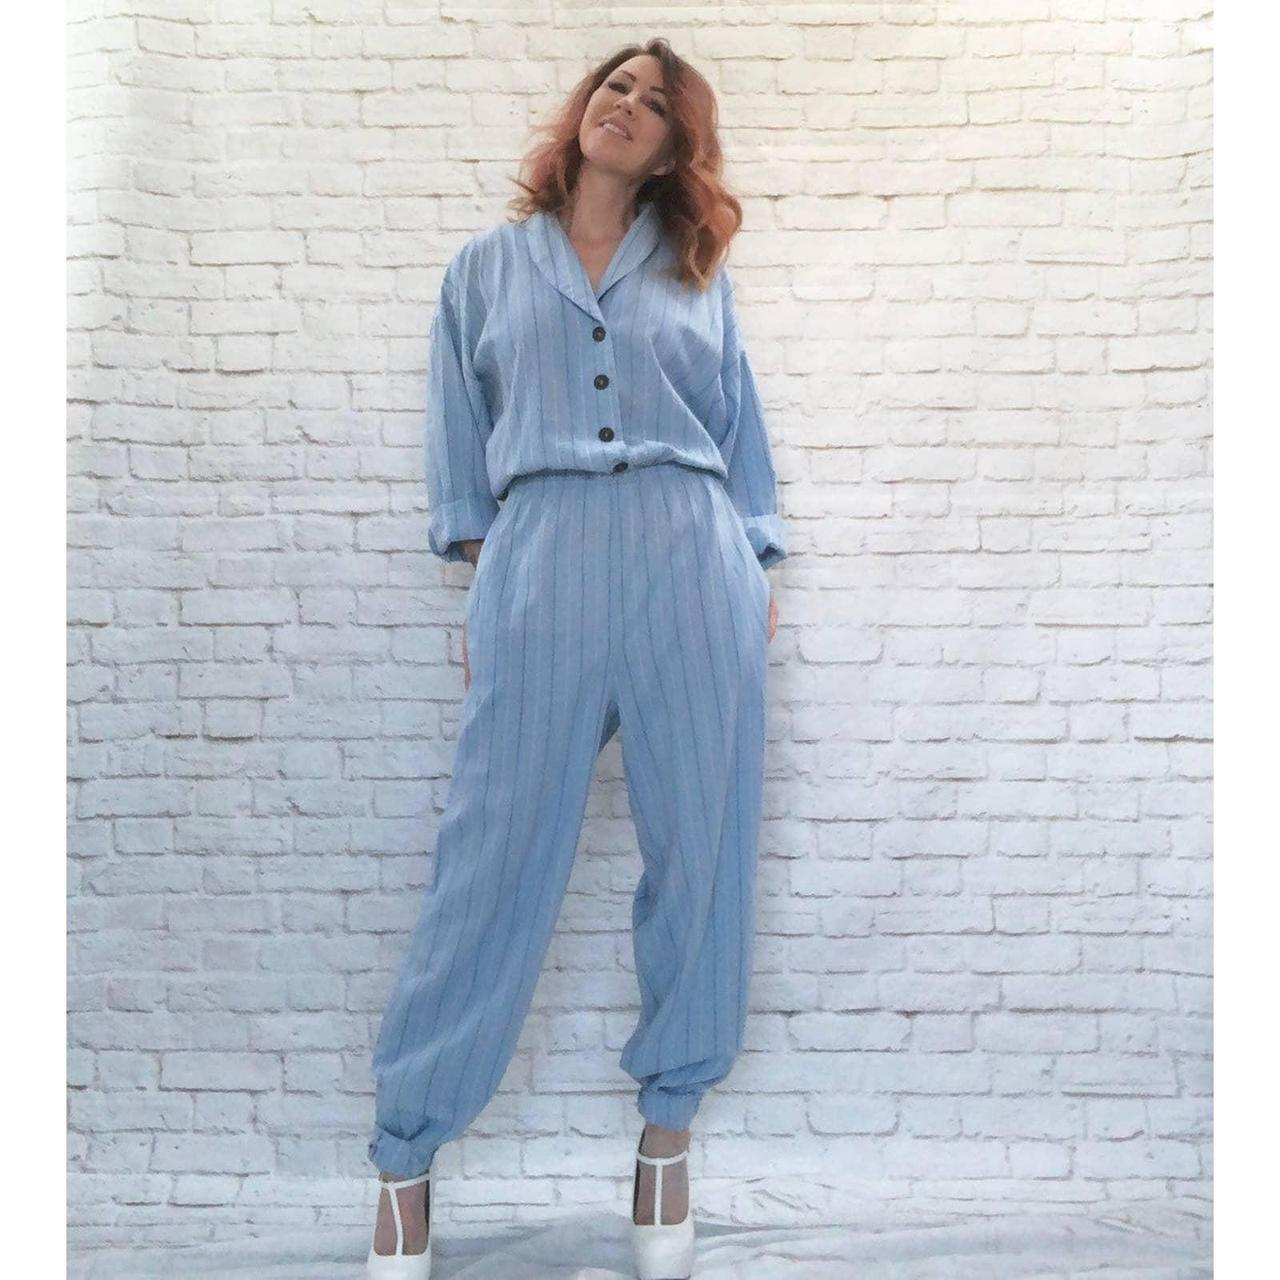 Product Image 1 - Vintage coveralls style jumpsuit from